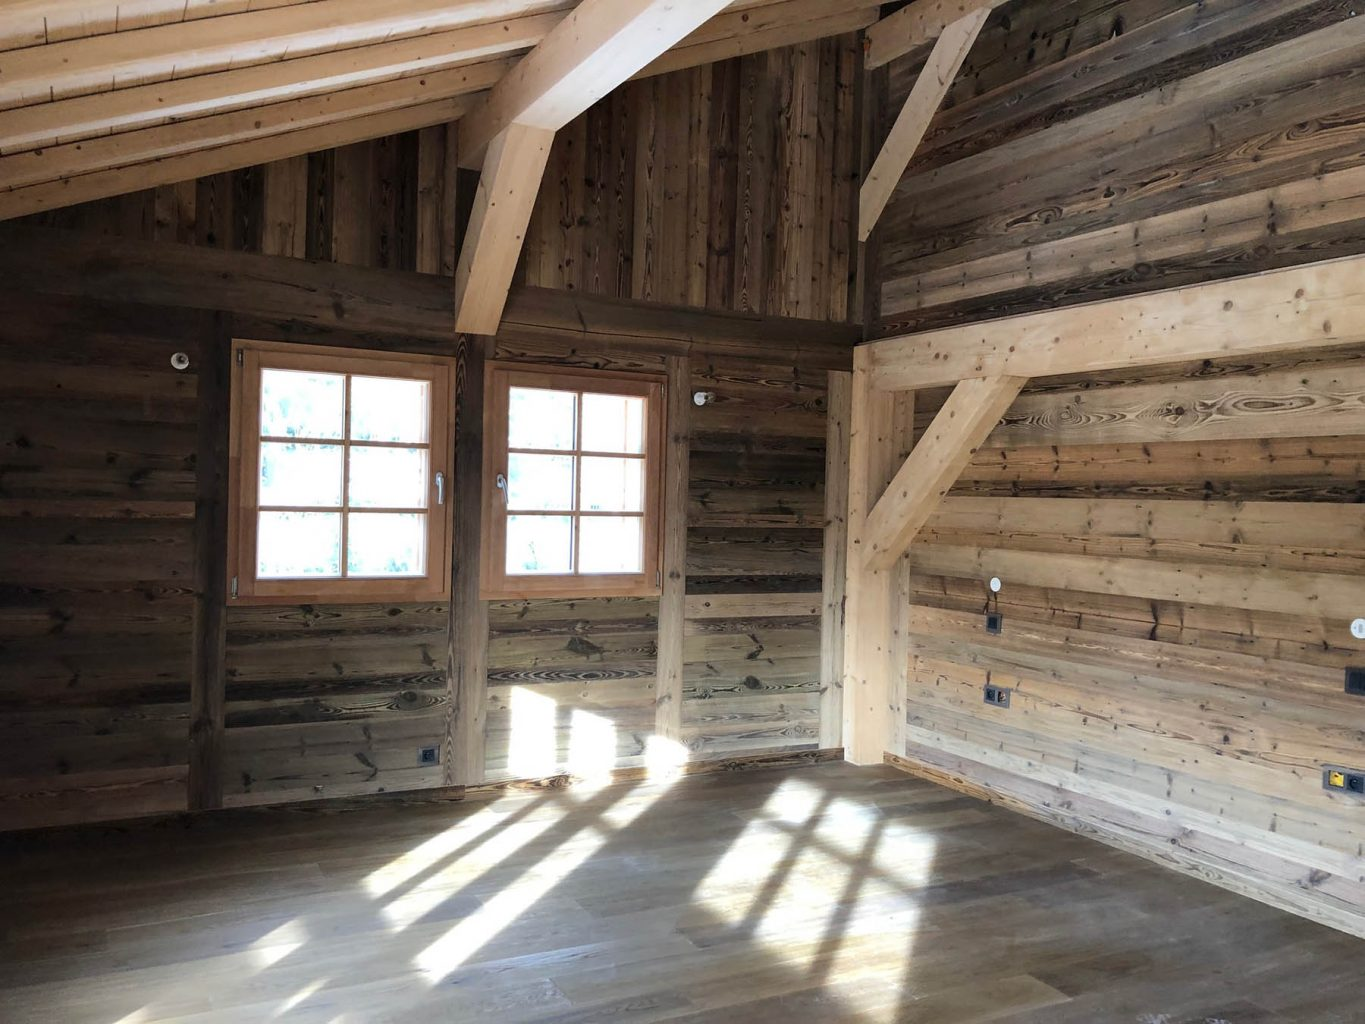 Chalet du Roi example interior wood